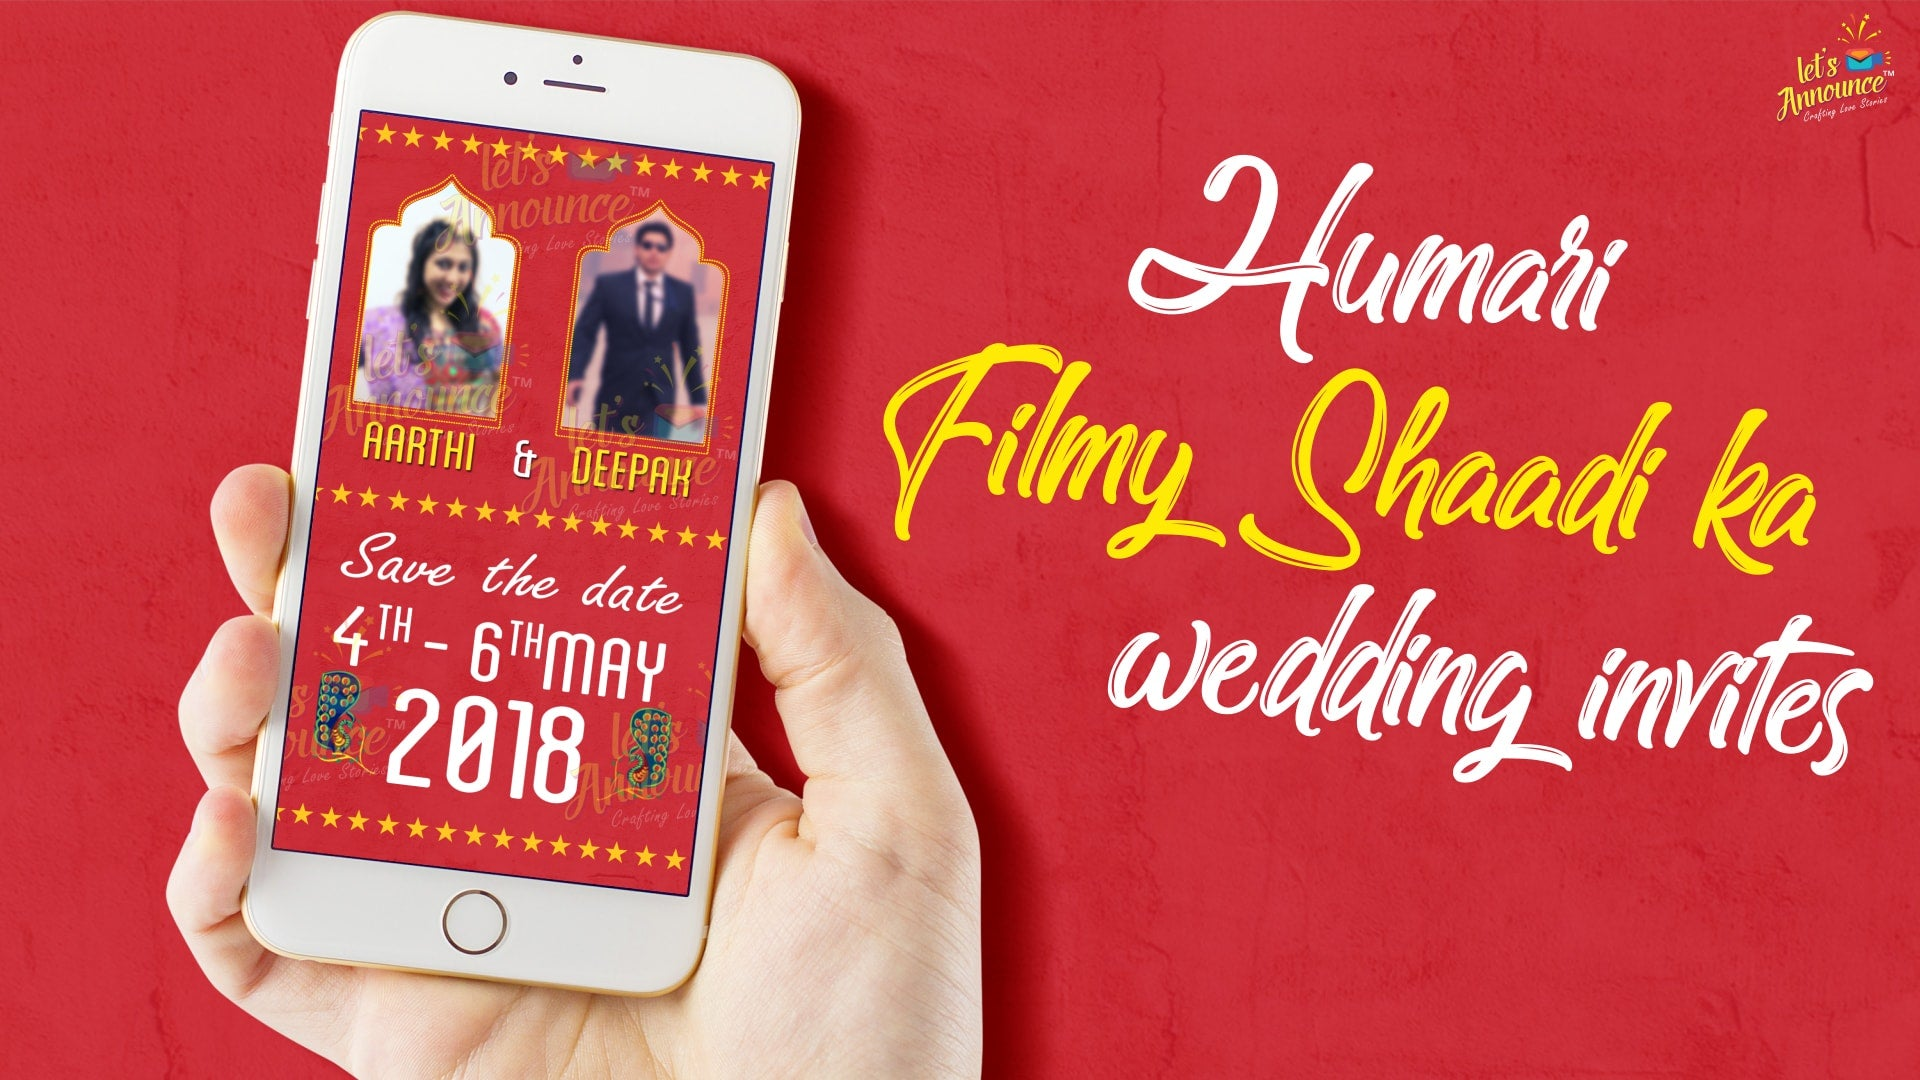 Filmy Wedding E-Invite (USD 50$) - Letsannounce